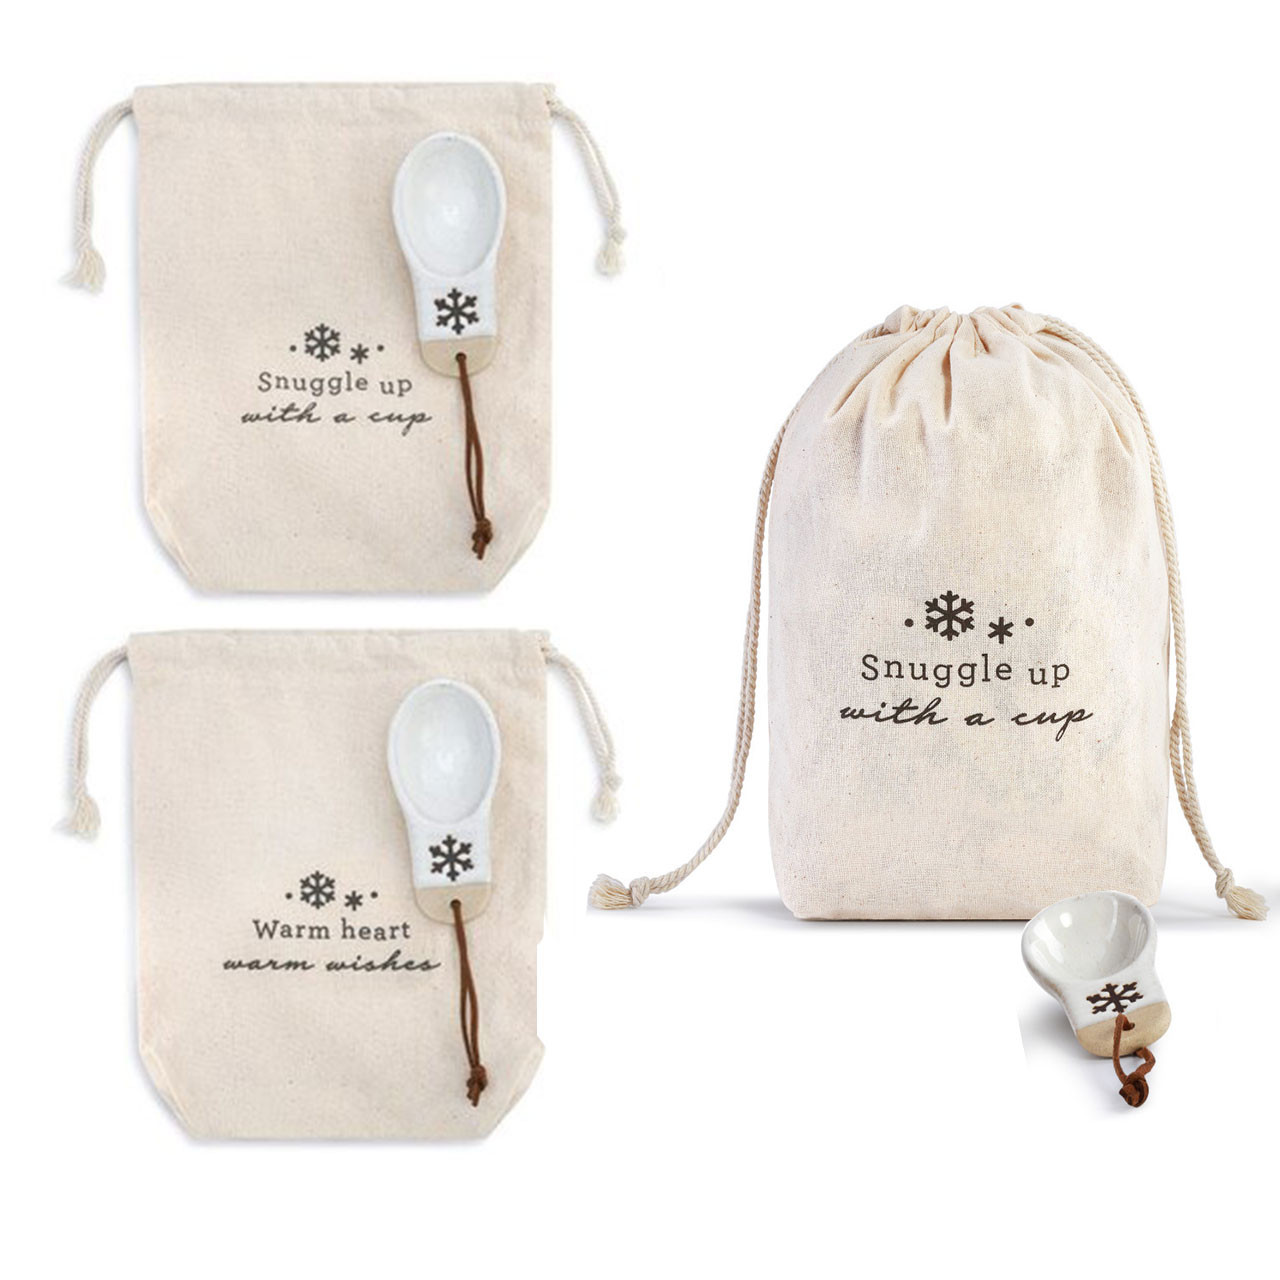 Snowflake Coffee Bags - Sold Separately